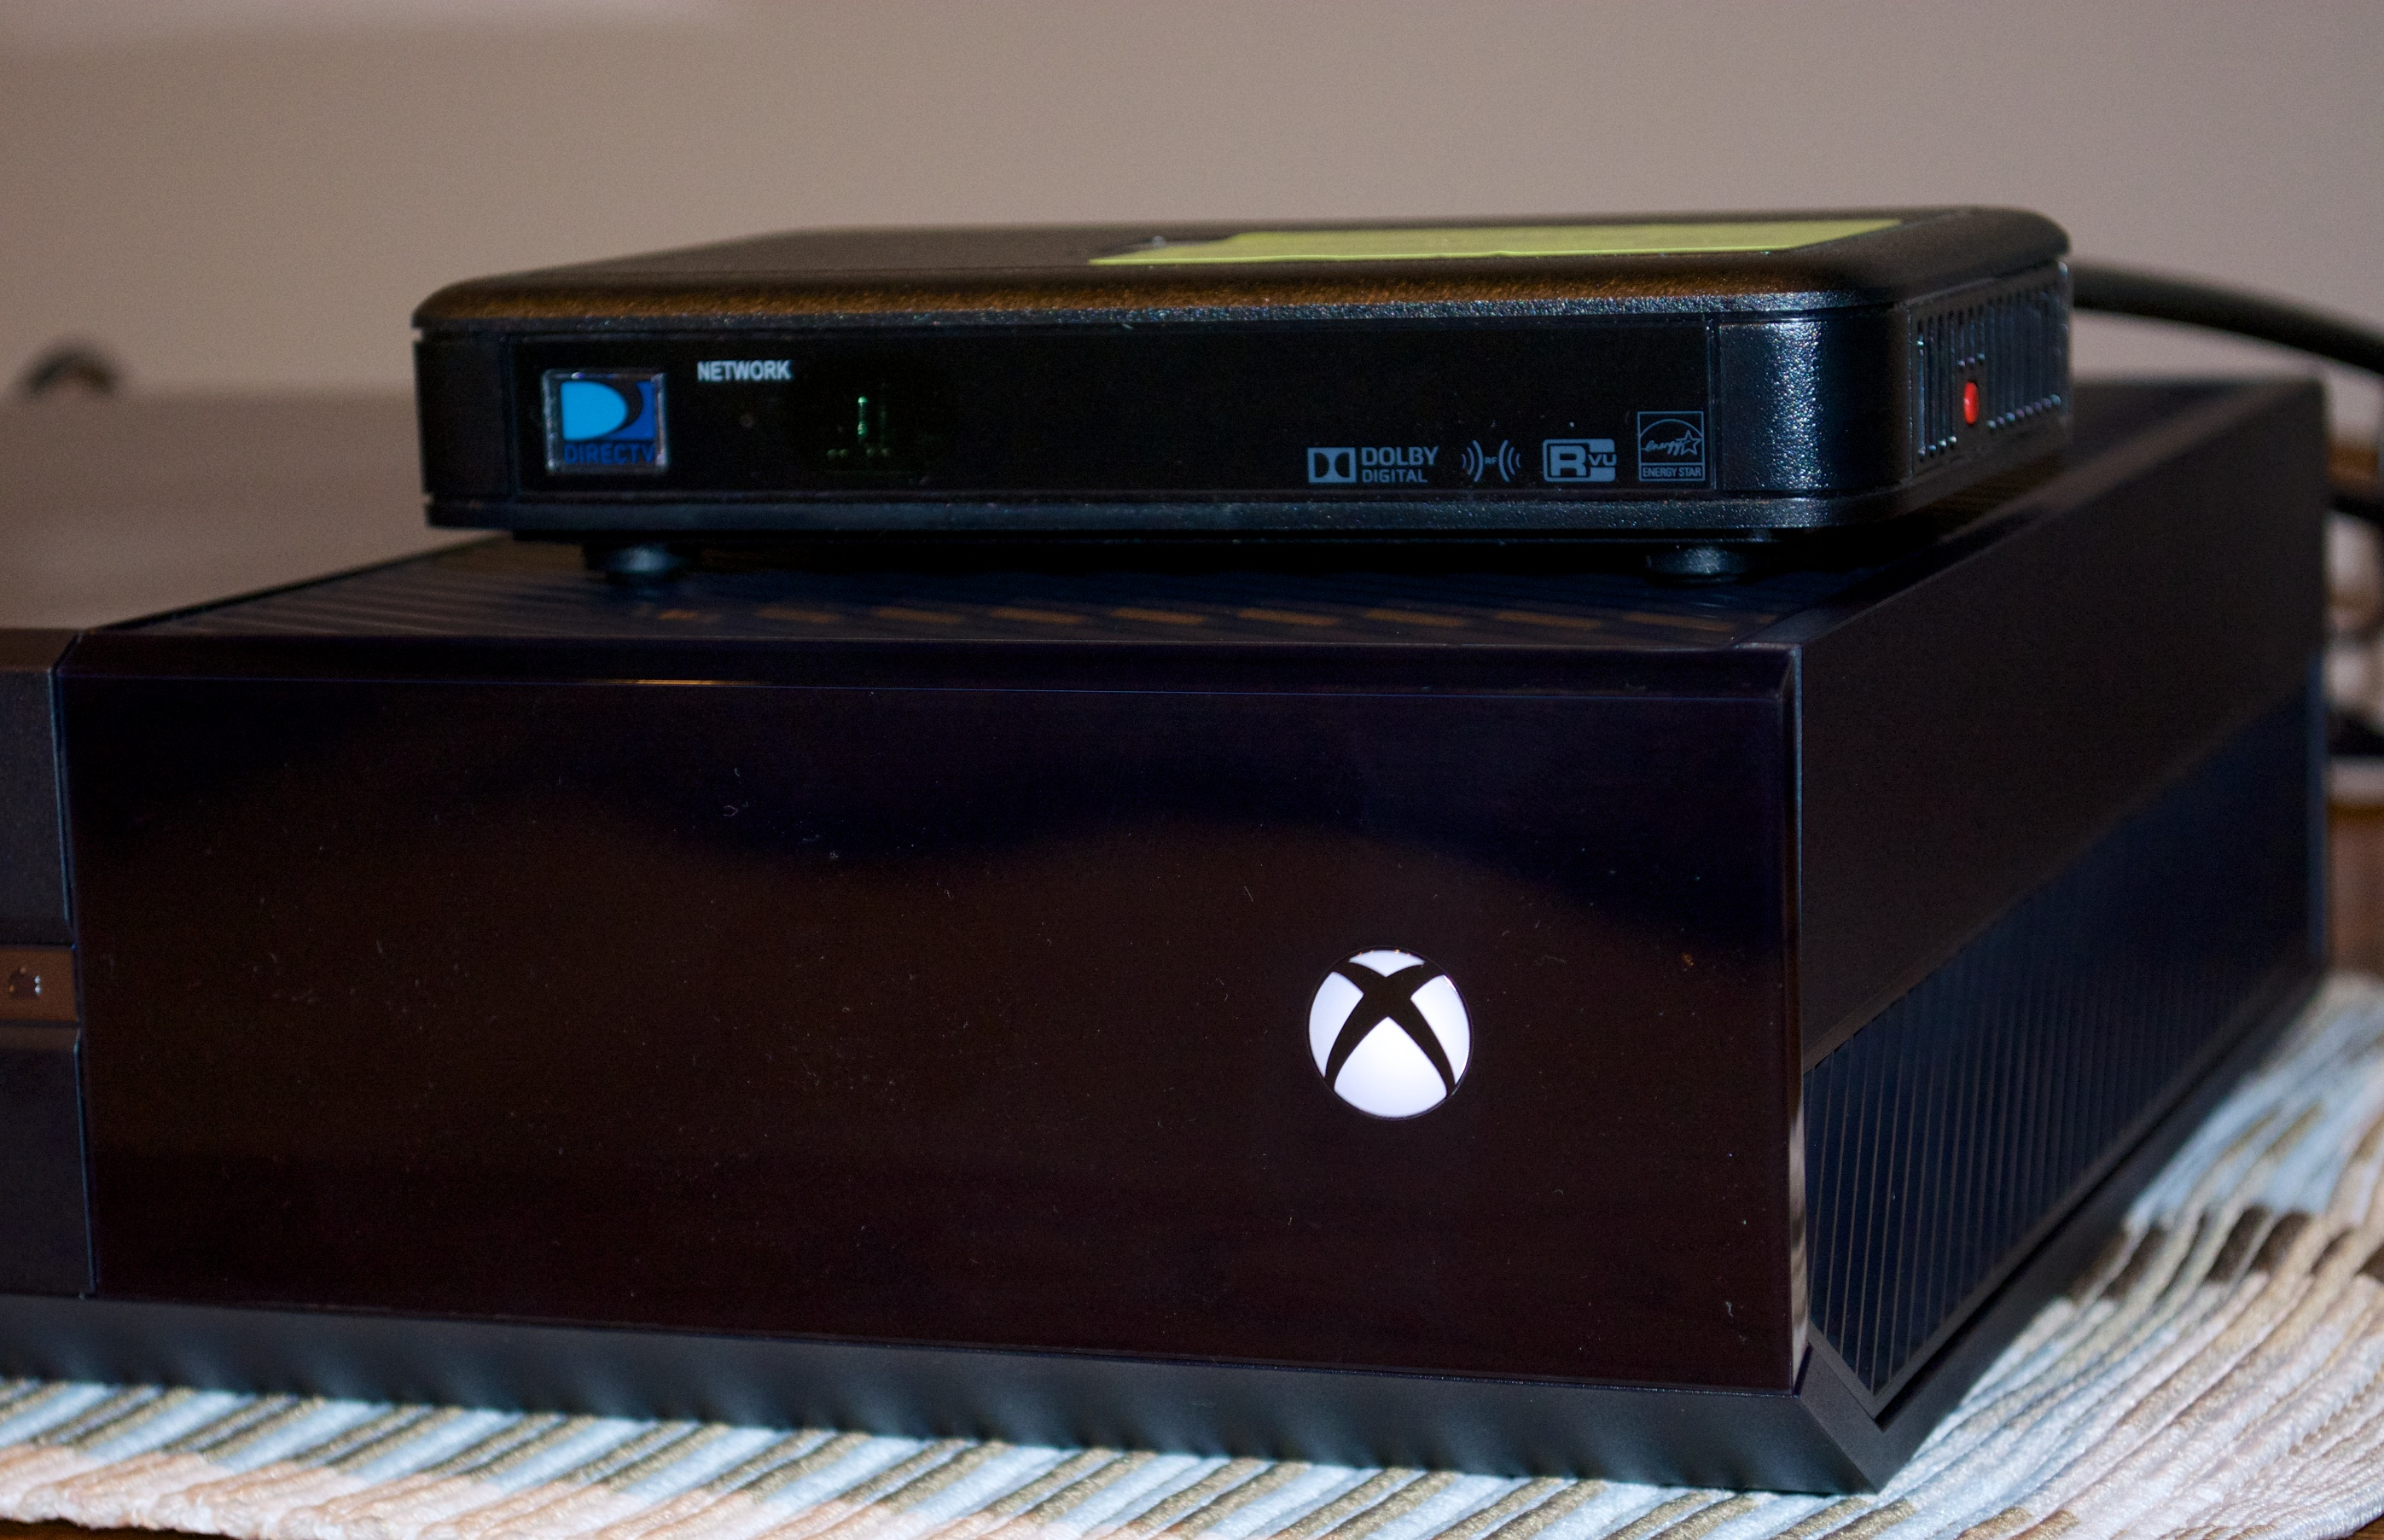 PS4 Vs Xbox One 7 Things Buyers Need To Know